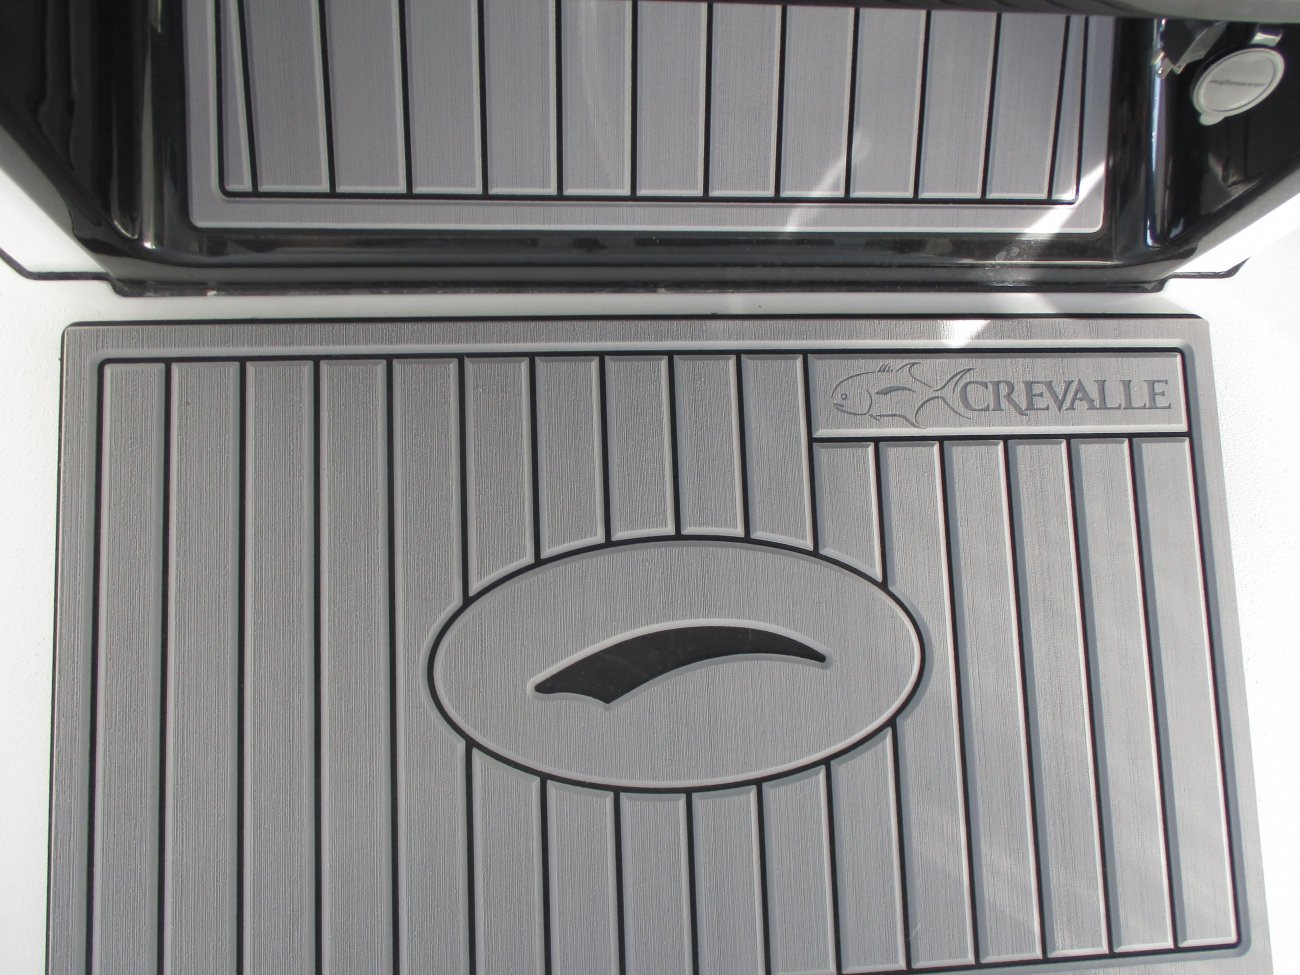 Family friendly boats focused on reliability, durability, and excellence in design.